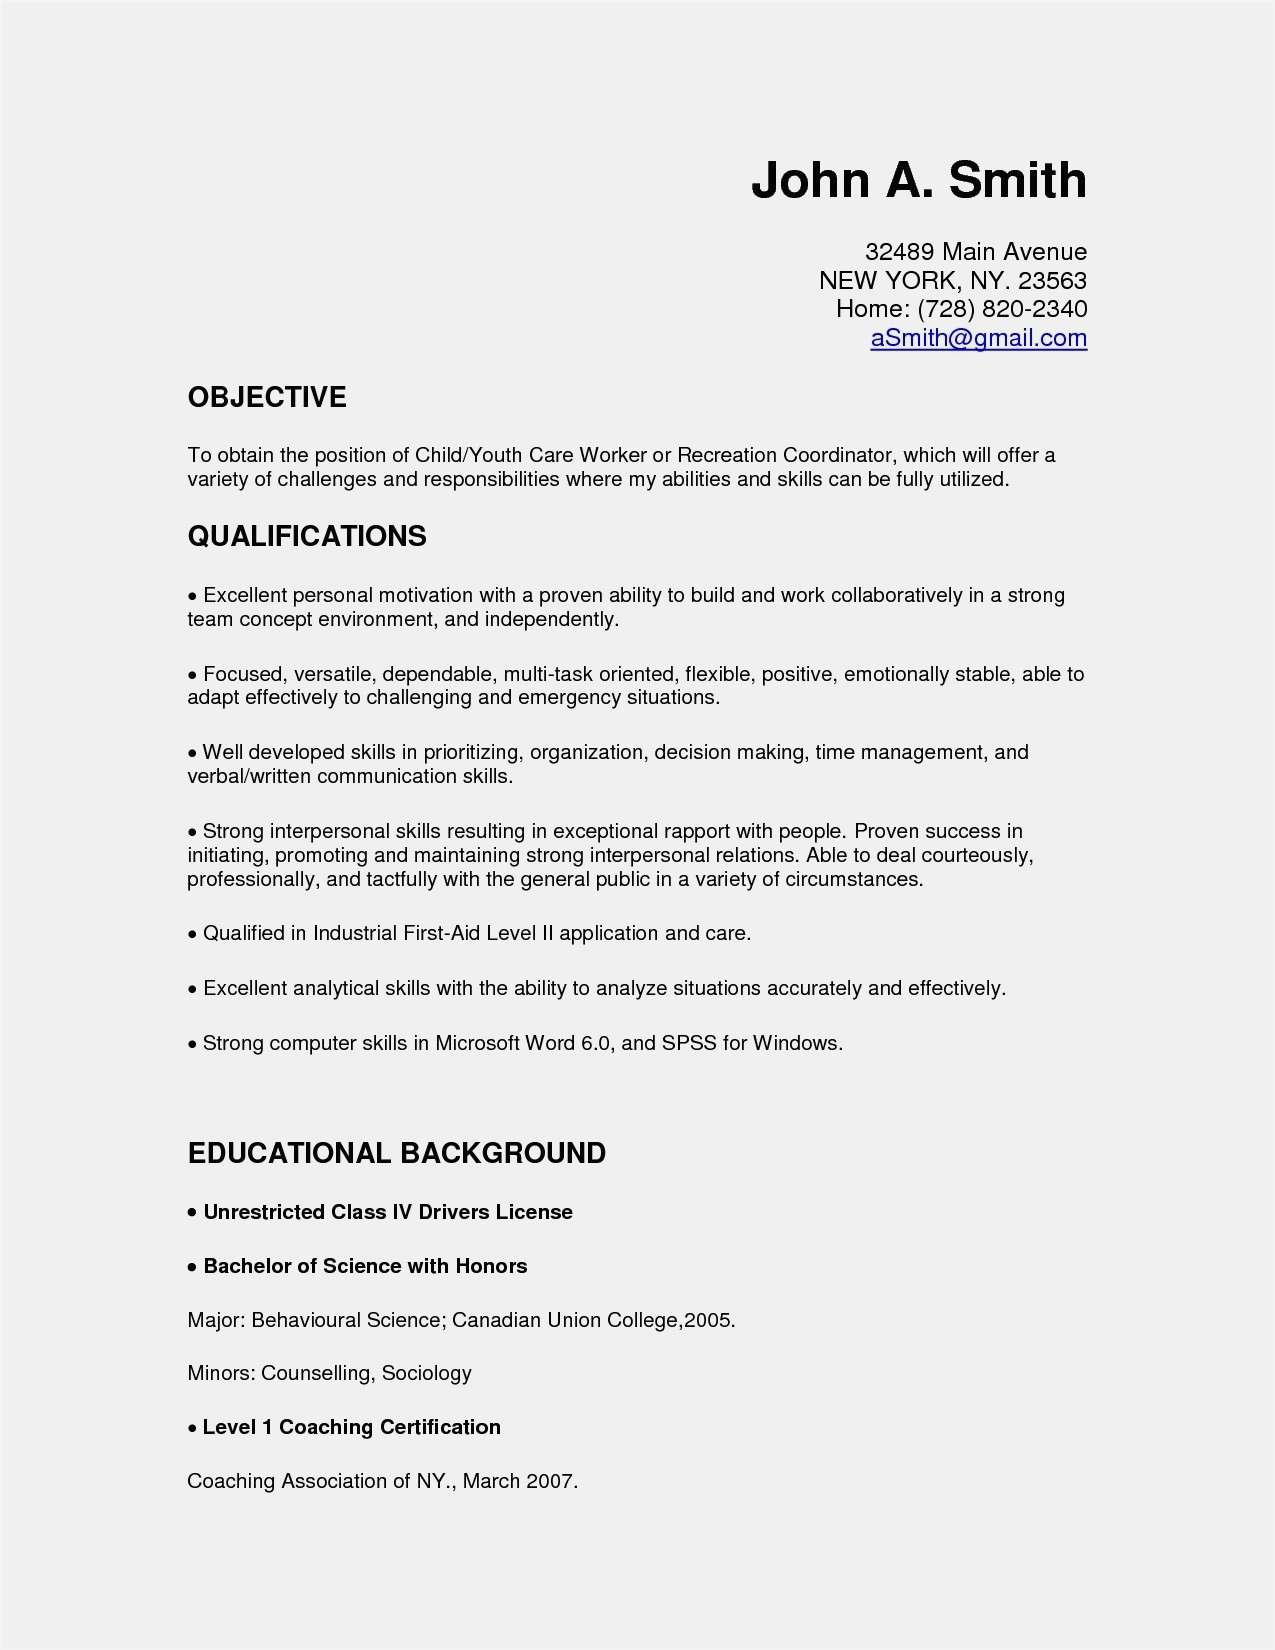 arts resume template example-Artist Resume Template Great Free Artistic Resume Templates Reference Beautiful Make A Resume New Artist 17-j